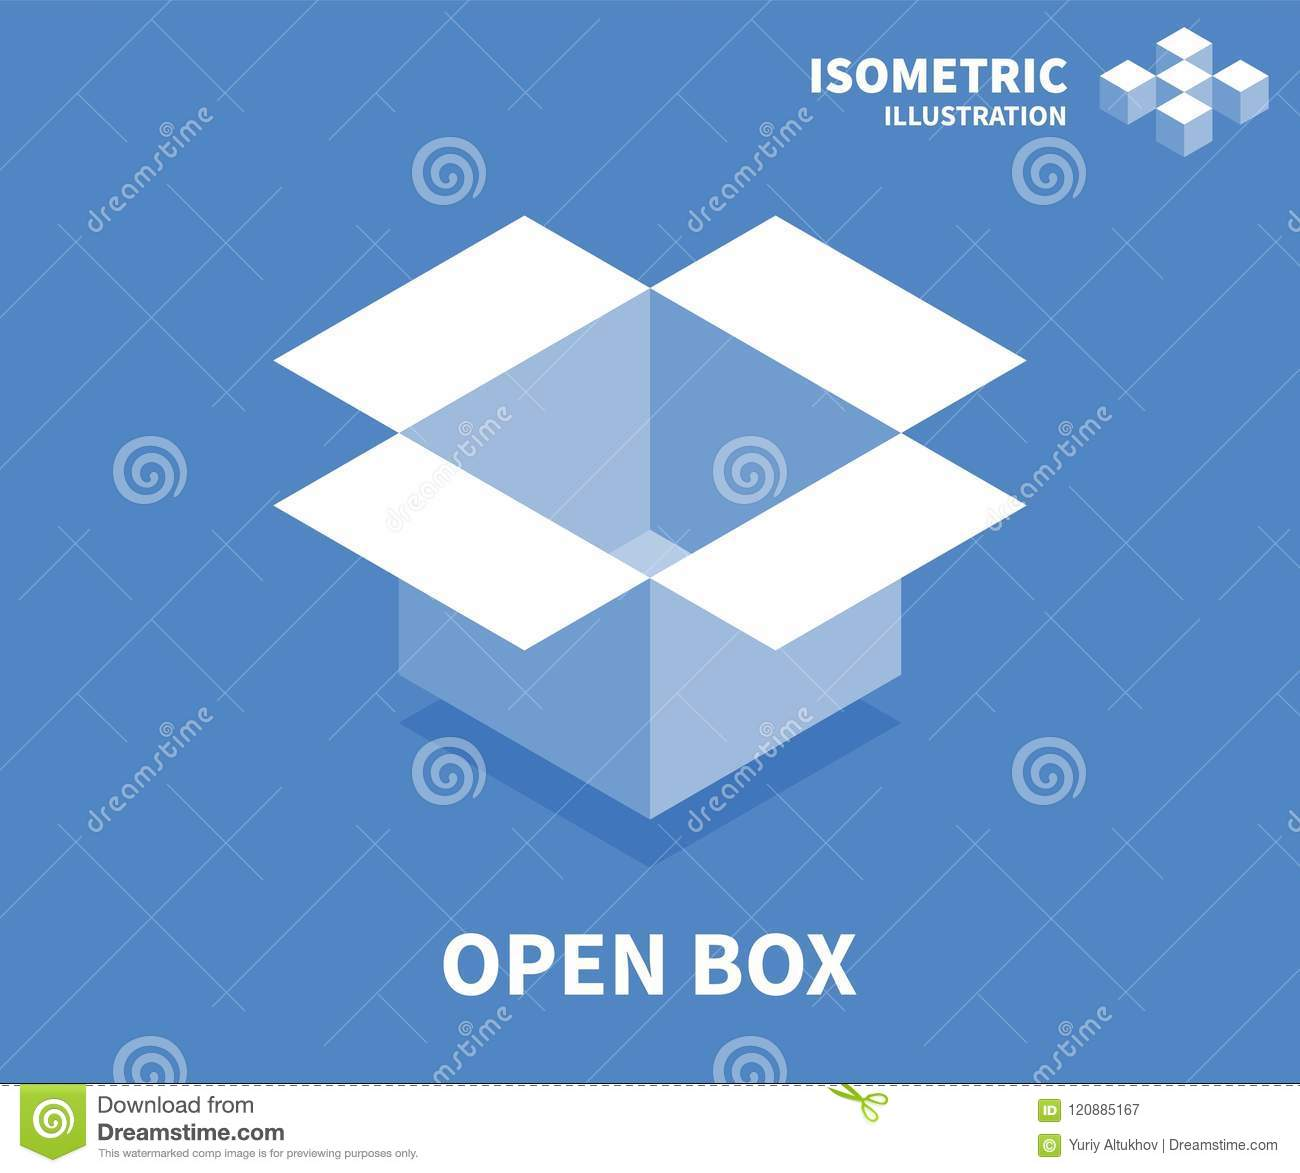 Open box icon isometric template for web design in flat 3d style isometric template for web design in flat 3d style vector illustration maxwellsz